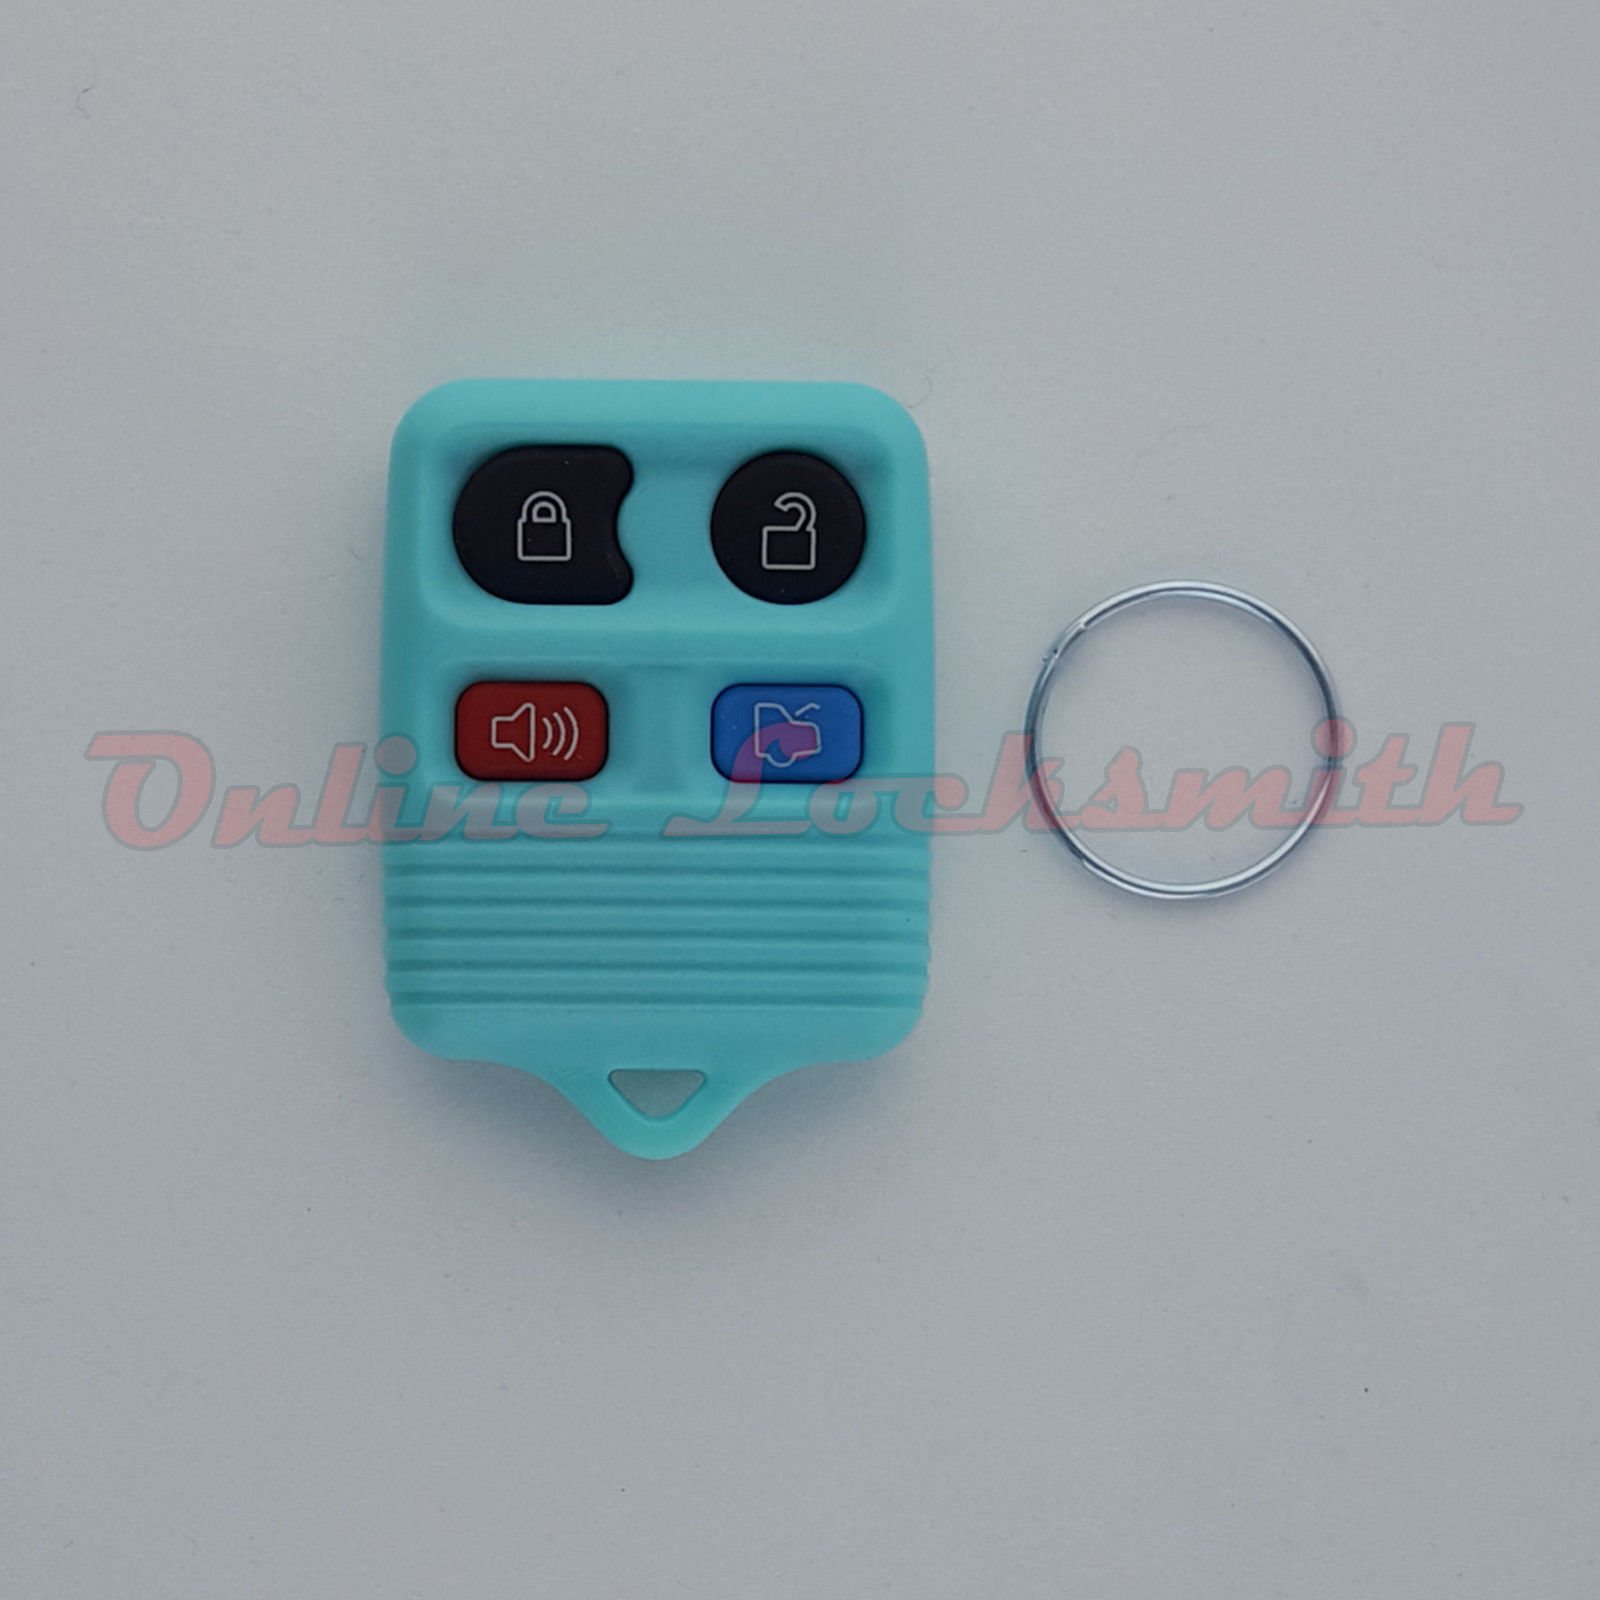 NEW Keyless Entry Key Fob Remote For a 2006 Ford Mustang 4Button DIY Programming